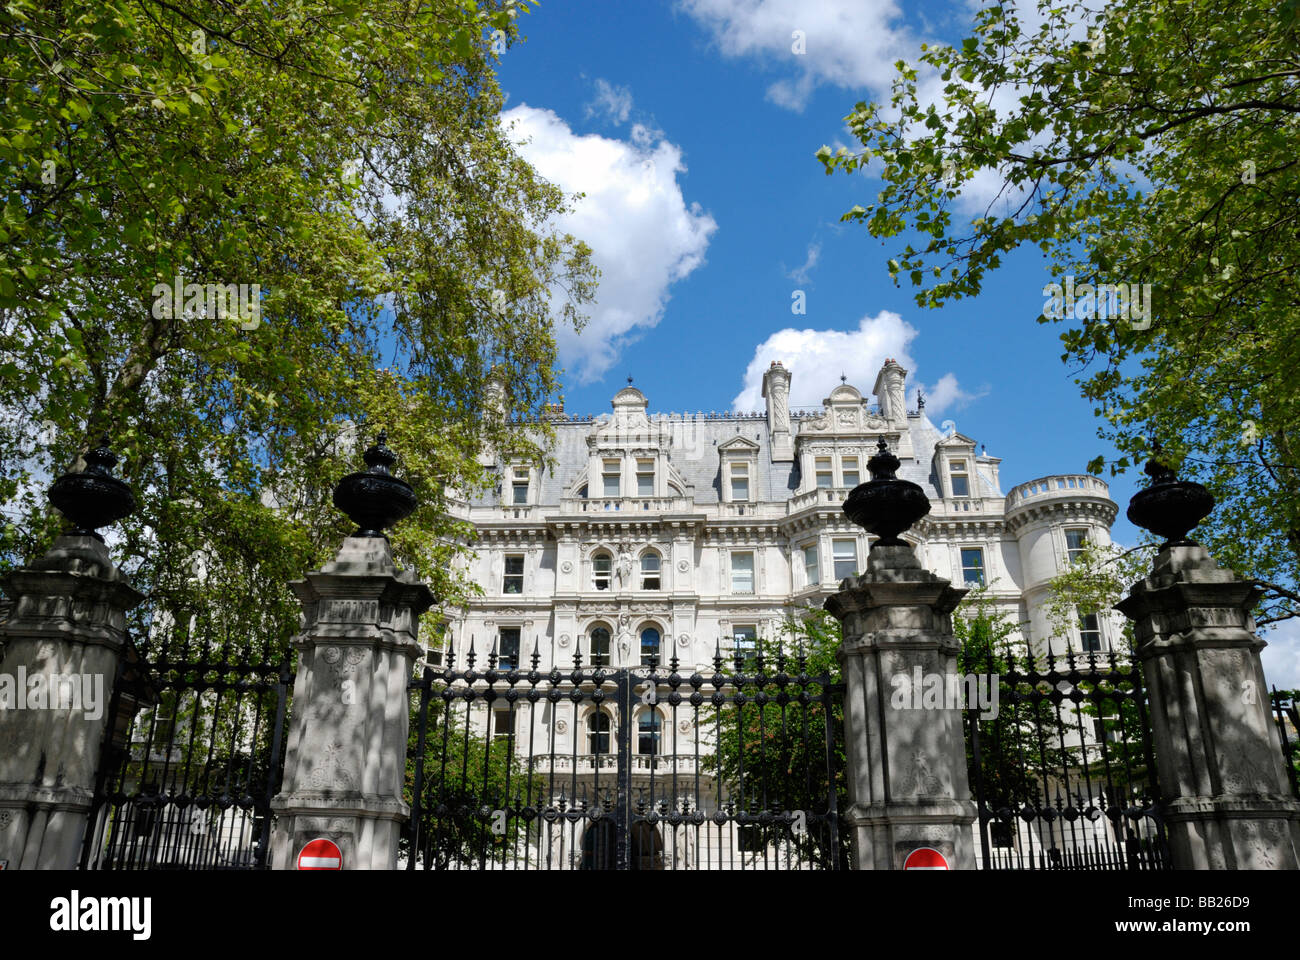 Middle Temple Inns of the Court Victoria Embankment London - Stock Image